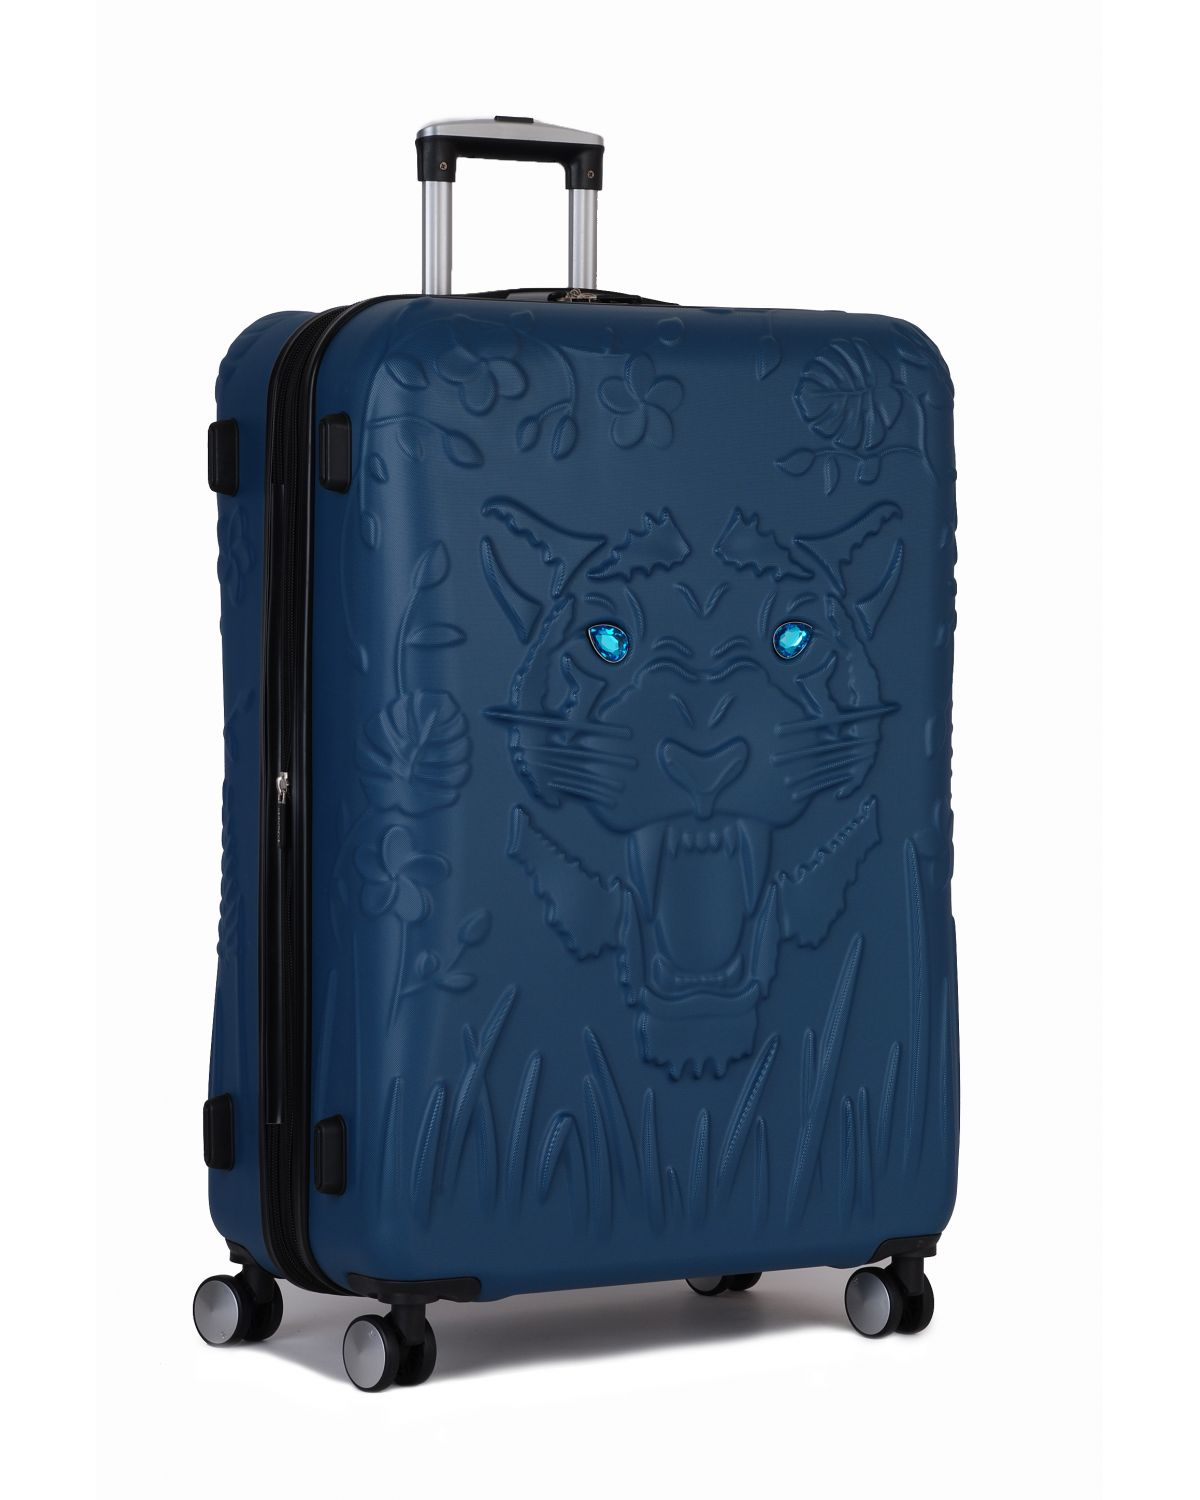 IT Luggage Tiger Eyes Büyük Boy Valiz 16-2251-08 Blue